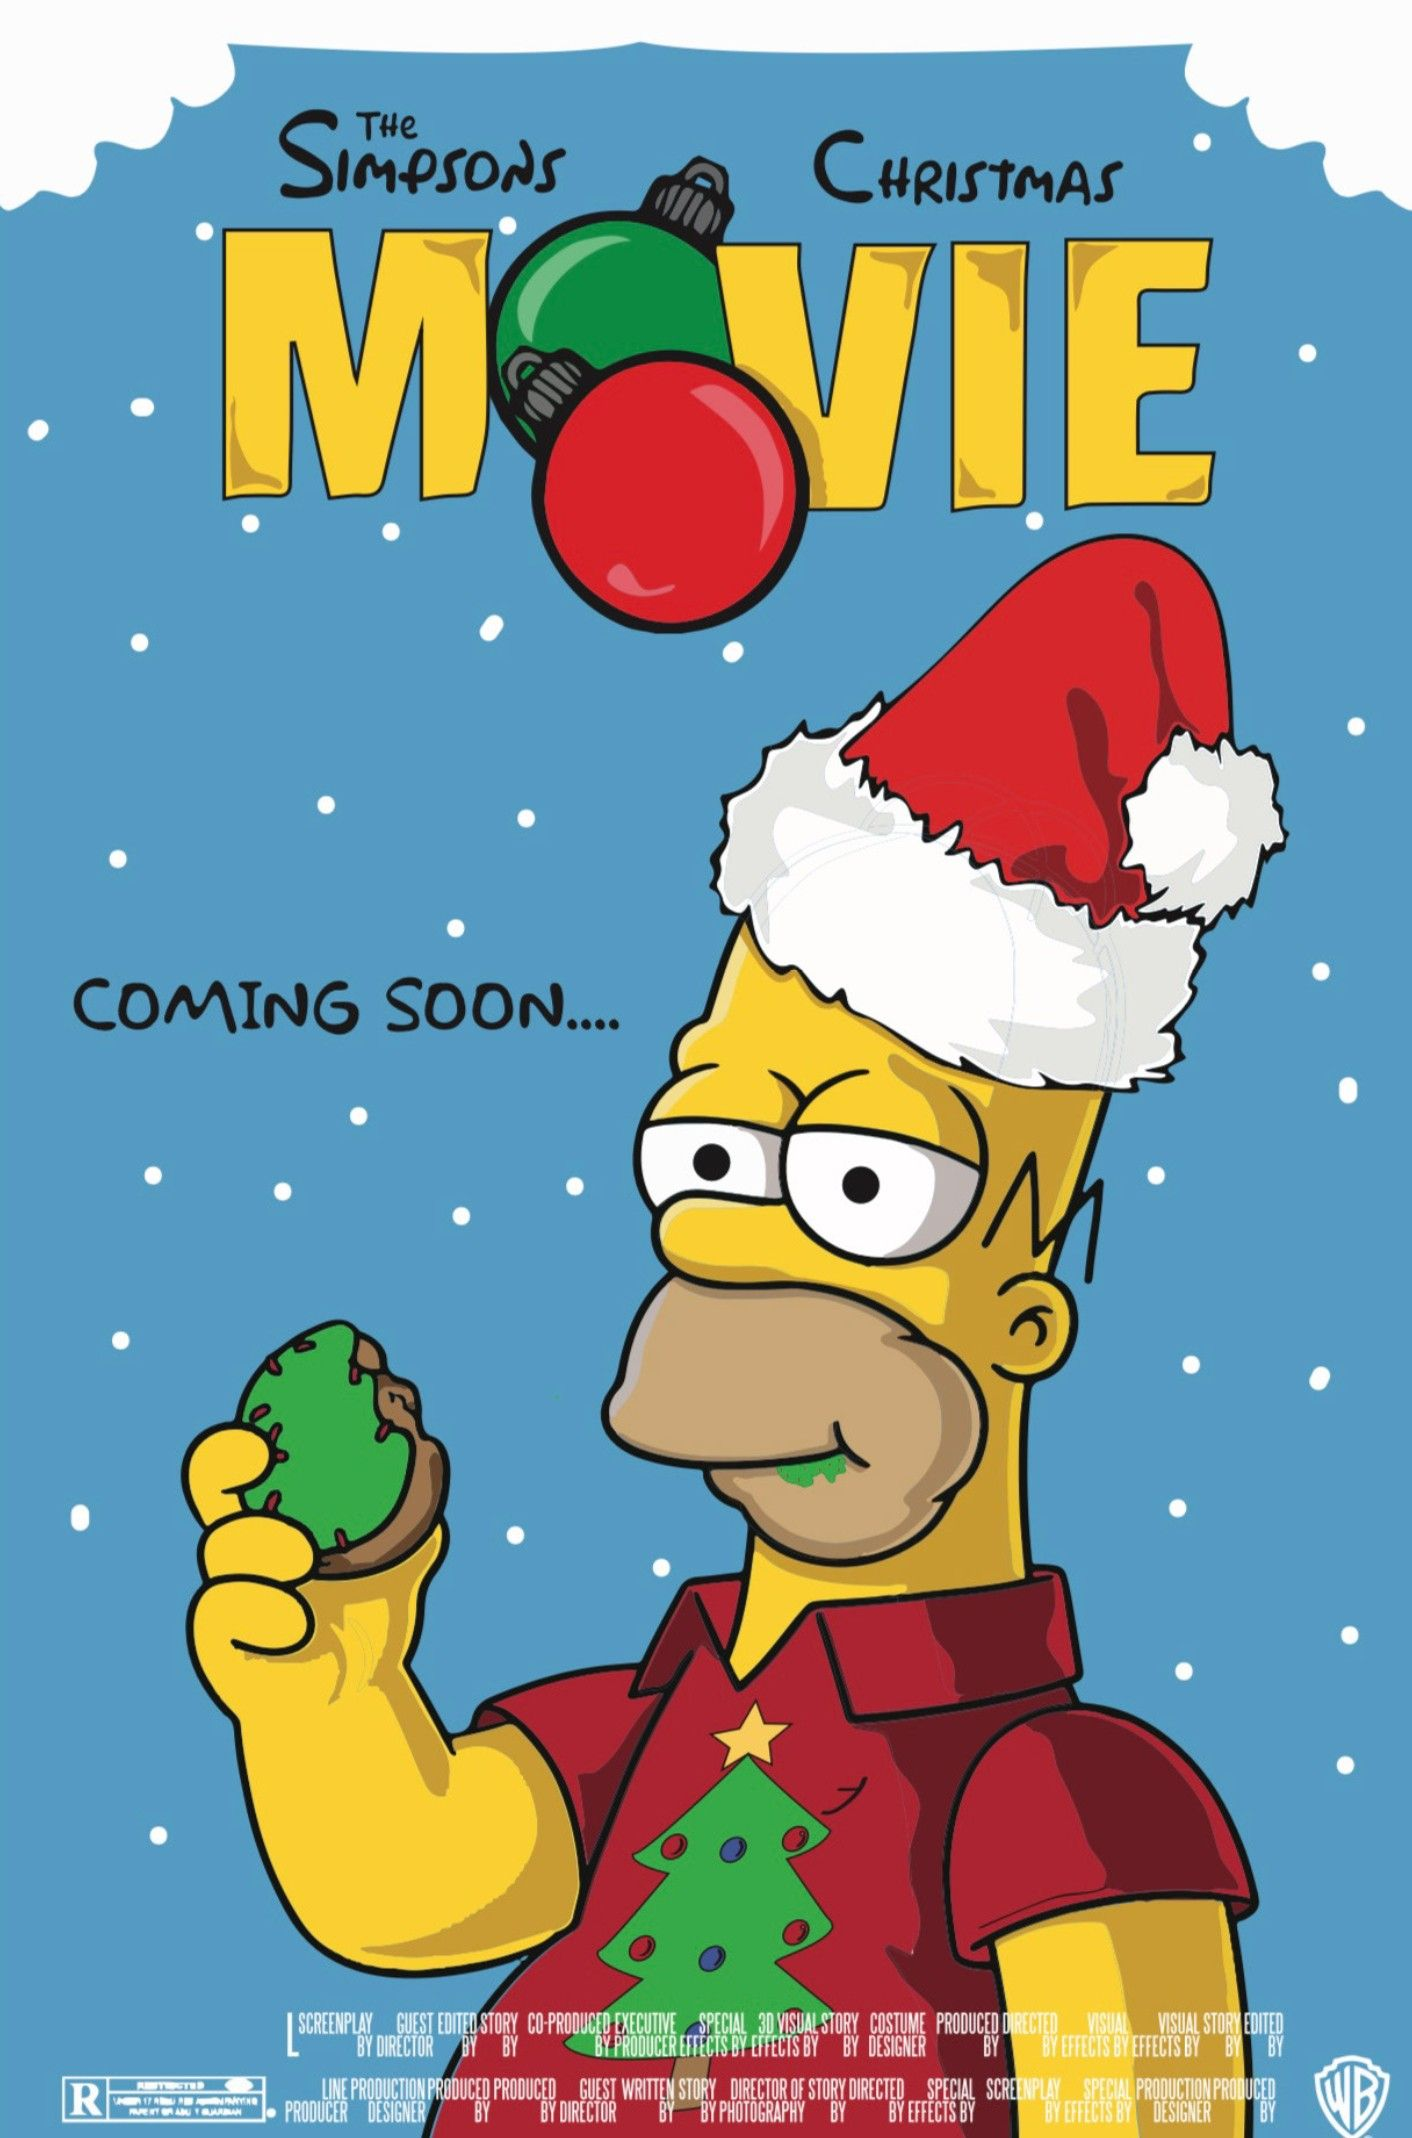 Pin by Carli Binek on old contoos The simpsons, Holiday